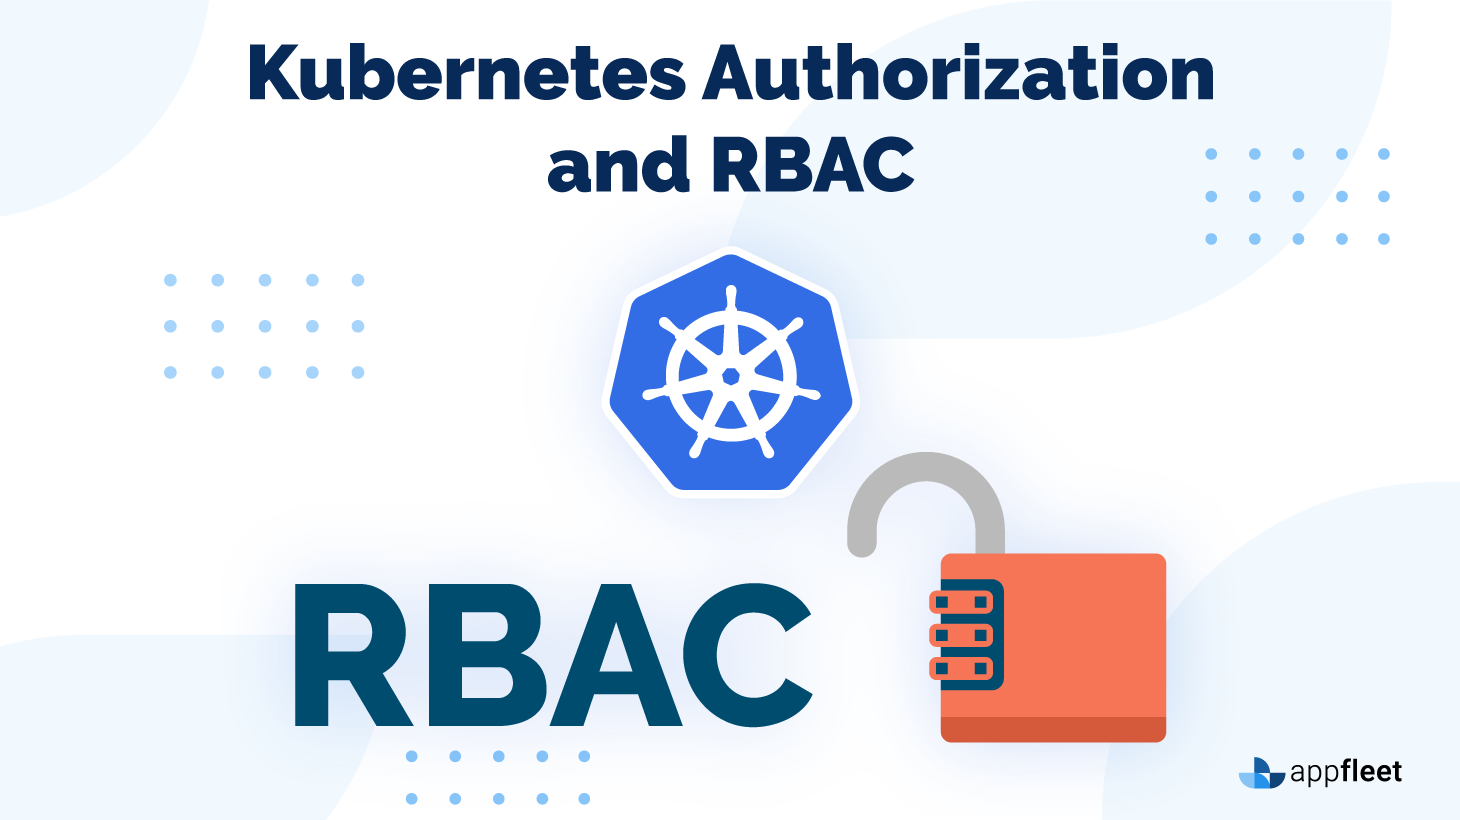 Kubernetes Authorization and RBAC